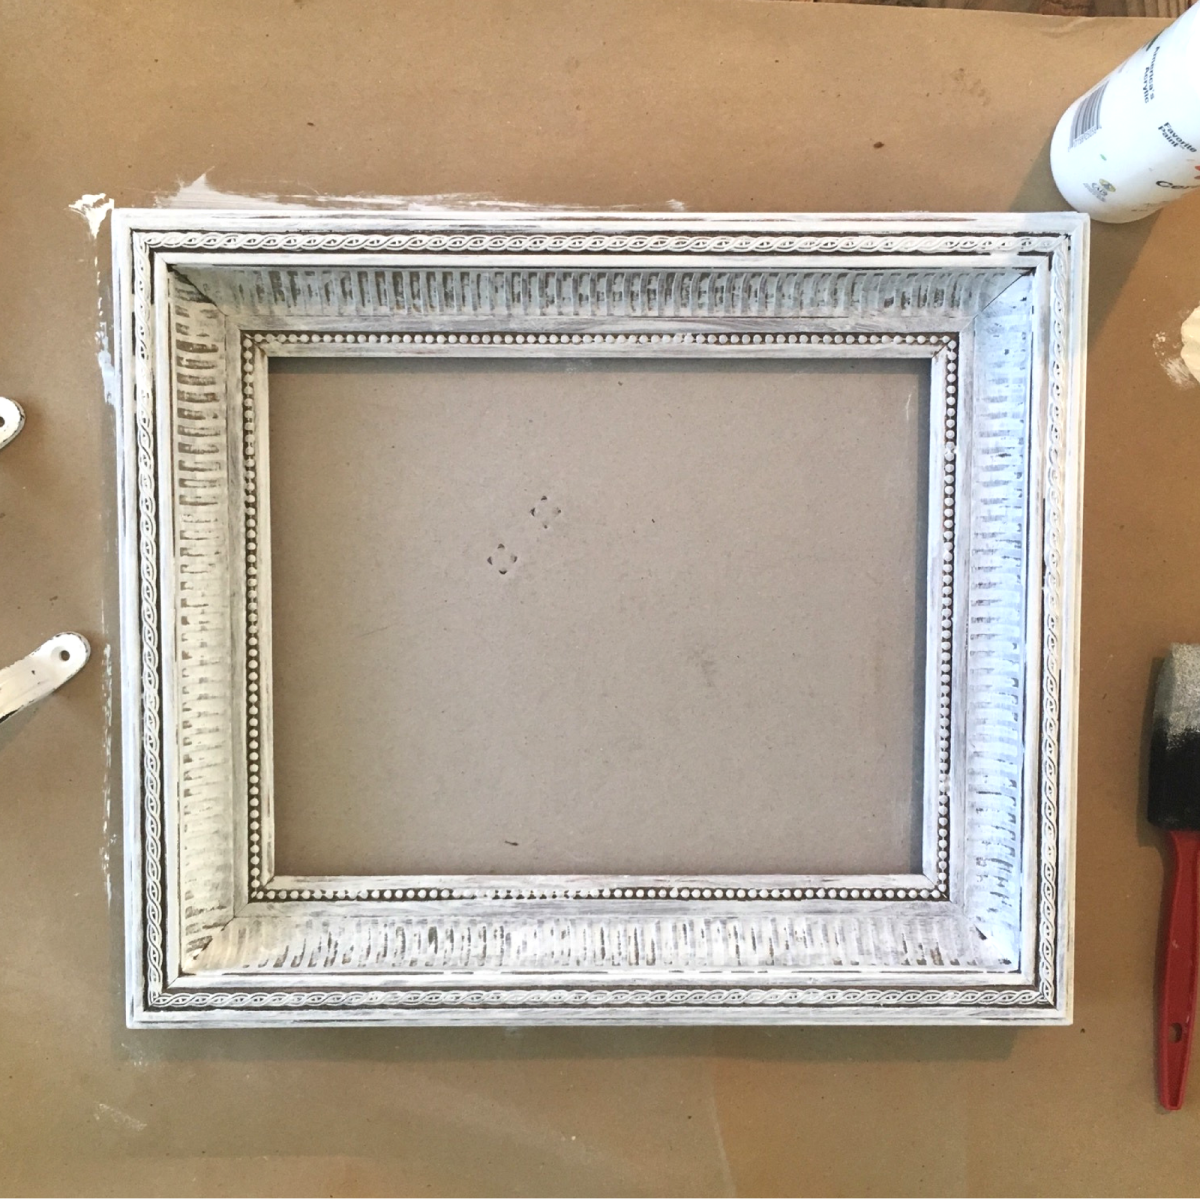 DIY Mother's Day Serving Tray - Frame